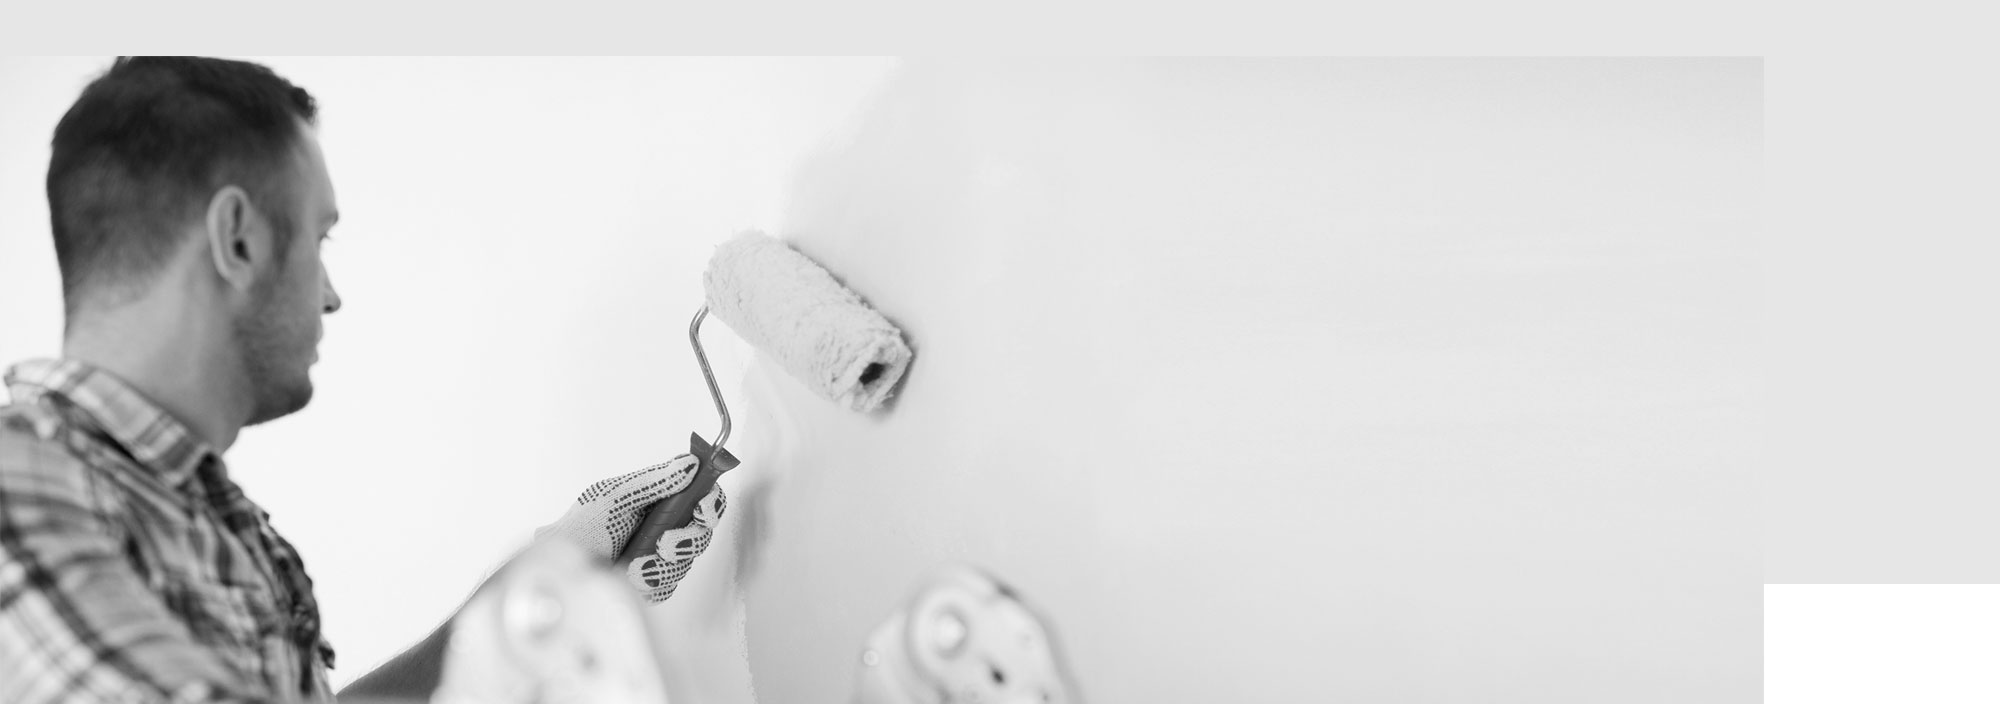 Rehab & Construction